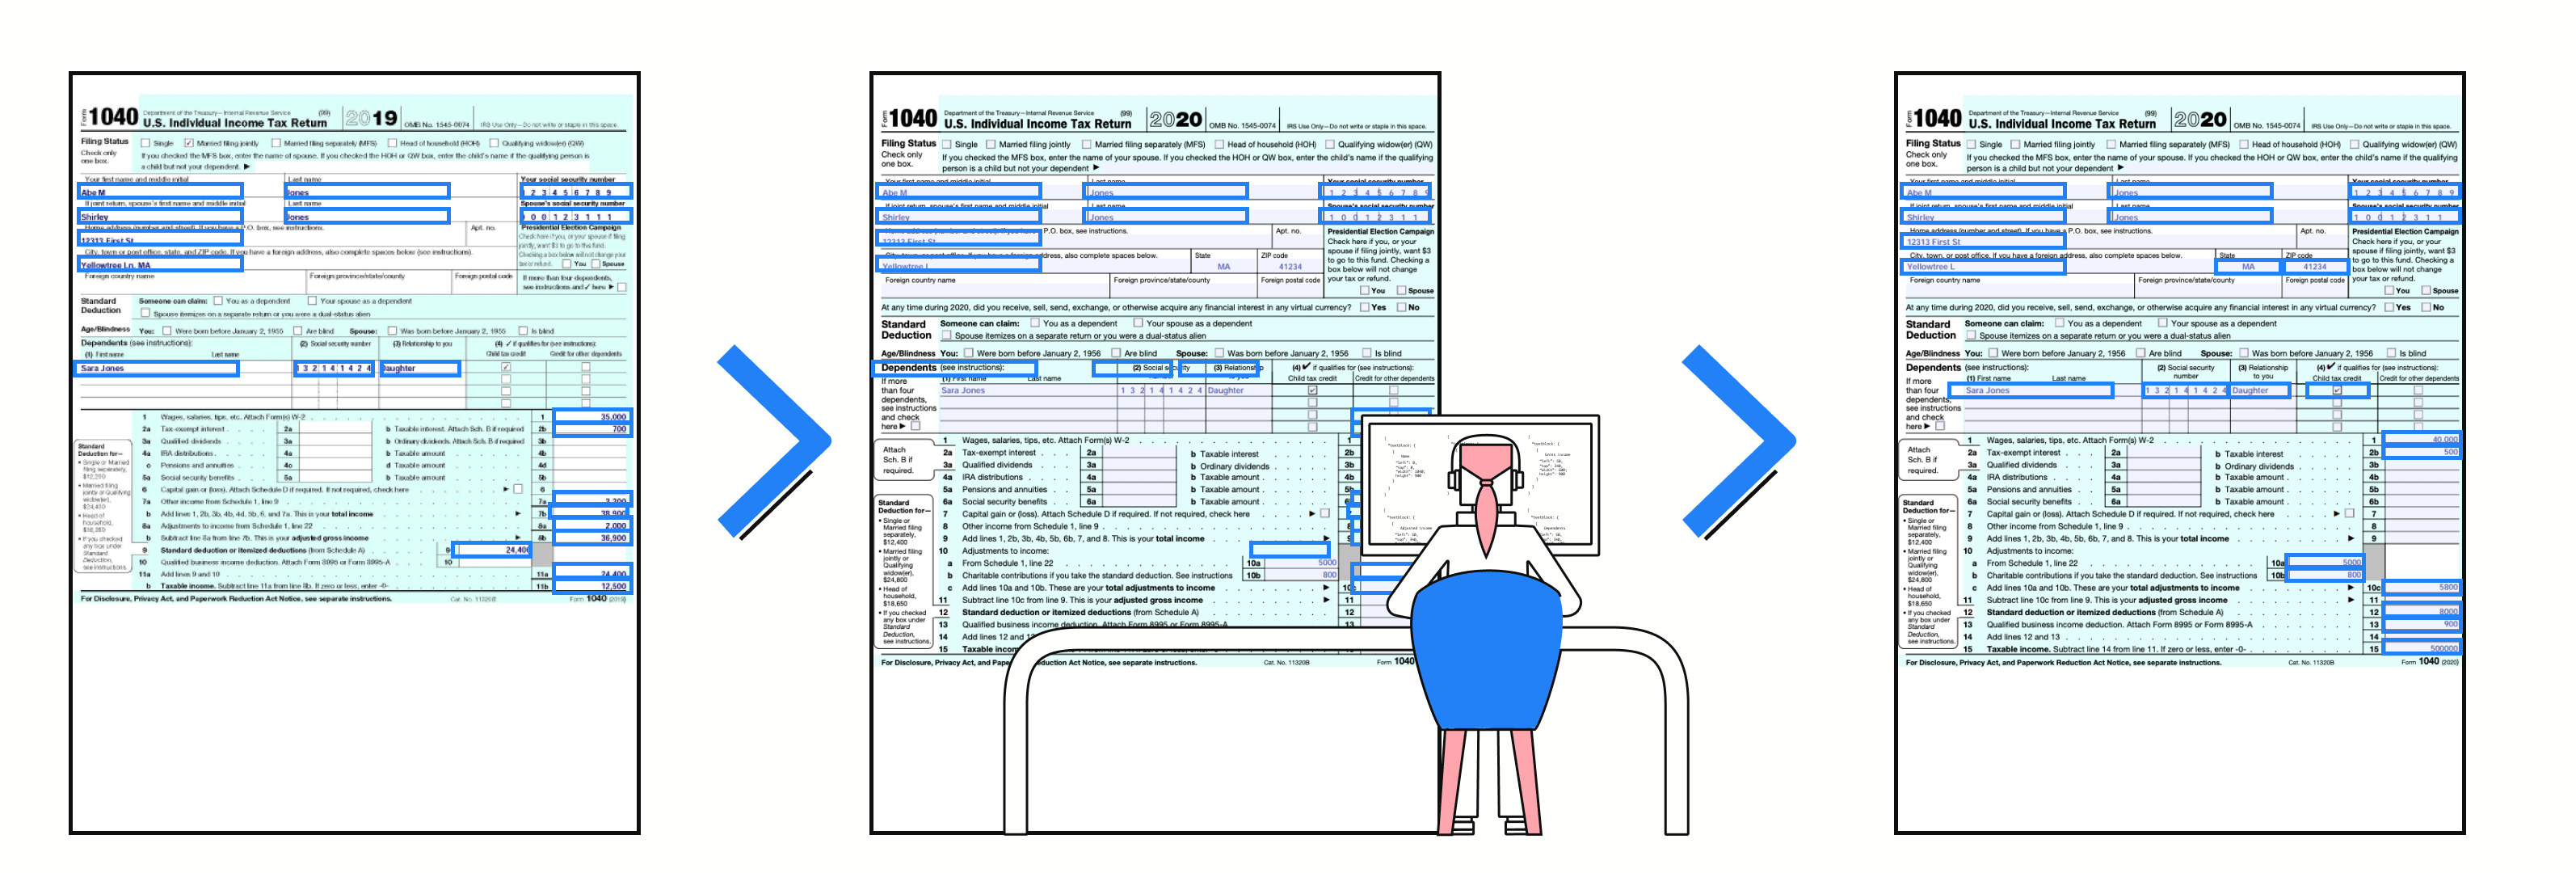 1040 from 2019 form with terms highlighted, arrow pointing to a 1040 from from 2020, with highlights not matching the correct information, and an illustration of an engineer reprogramming the model, another arrow that points to a final 1040 form from 2020 with the correct info highlighted.